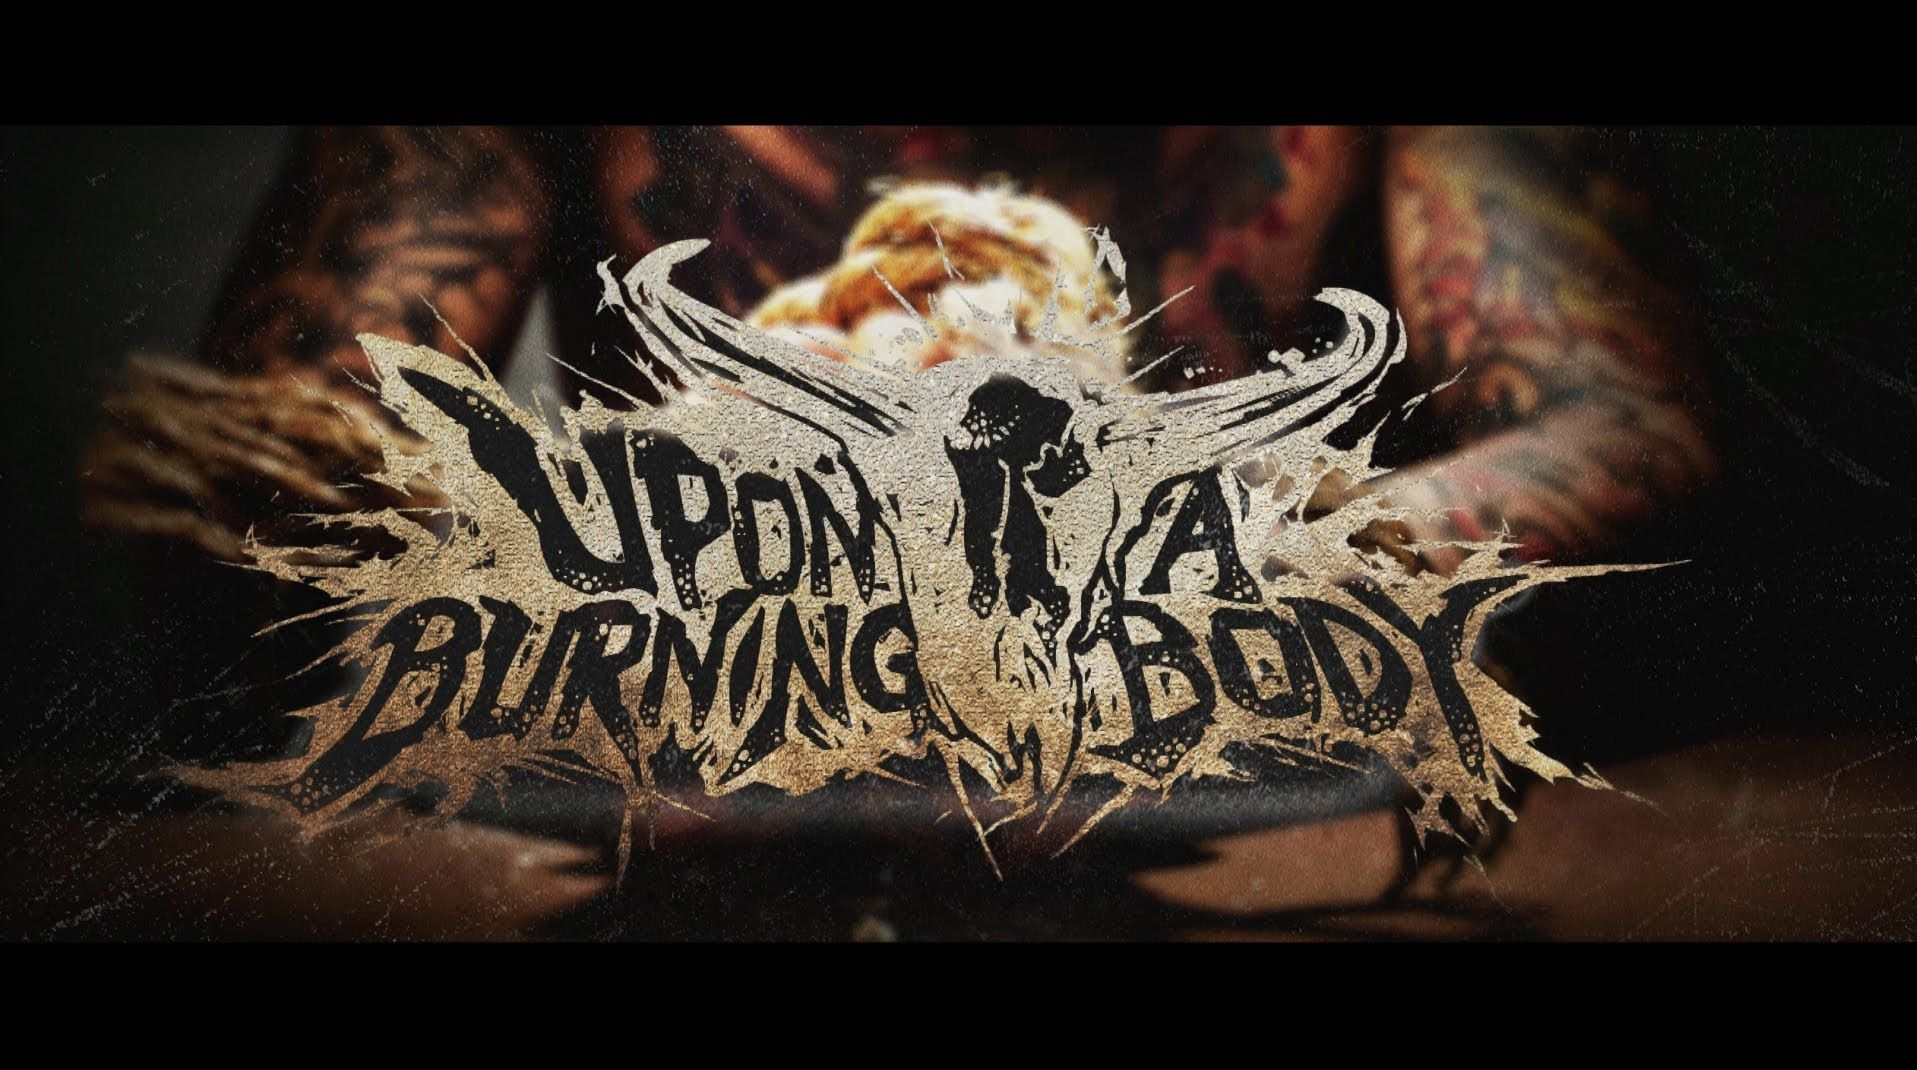 Upon a burning body songs